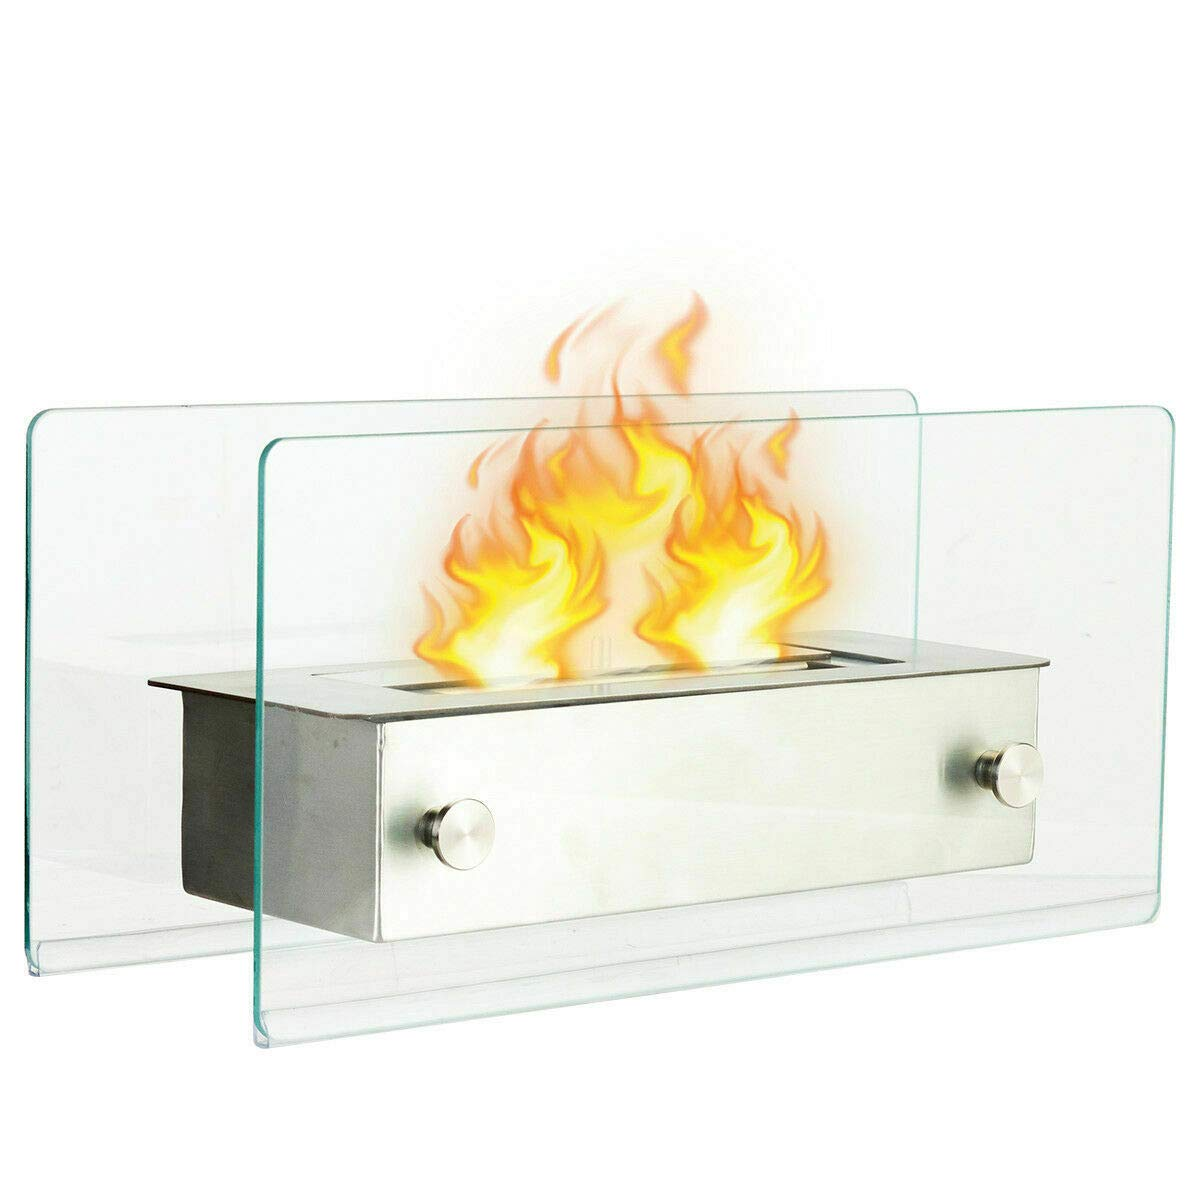 NanaPluz Portable Stainless Steel Ventless Bio Ethanol Tabletop Fireplace Indoor Outdoor Decor Tempered Glass with Ebook by NanaPluz